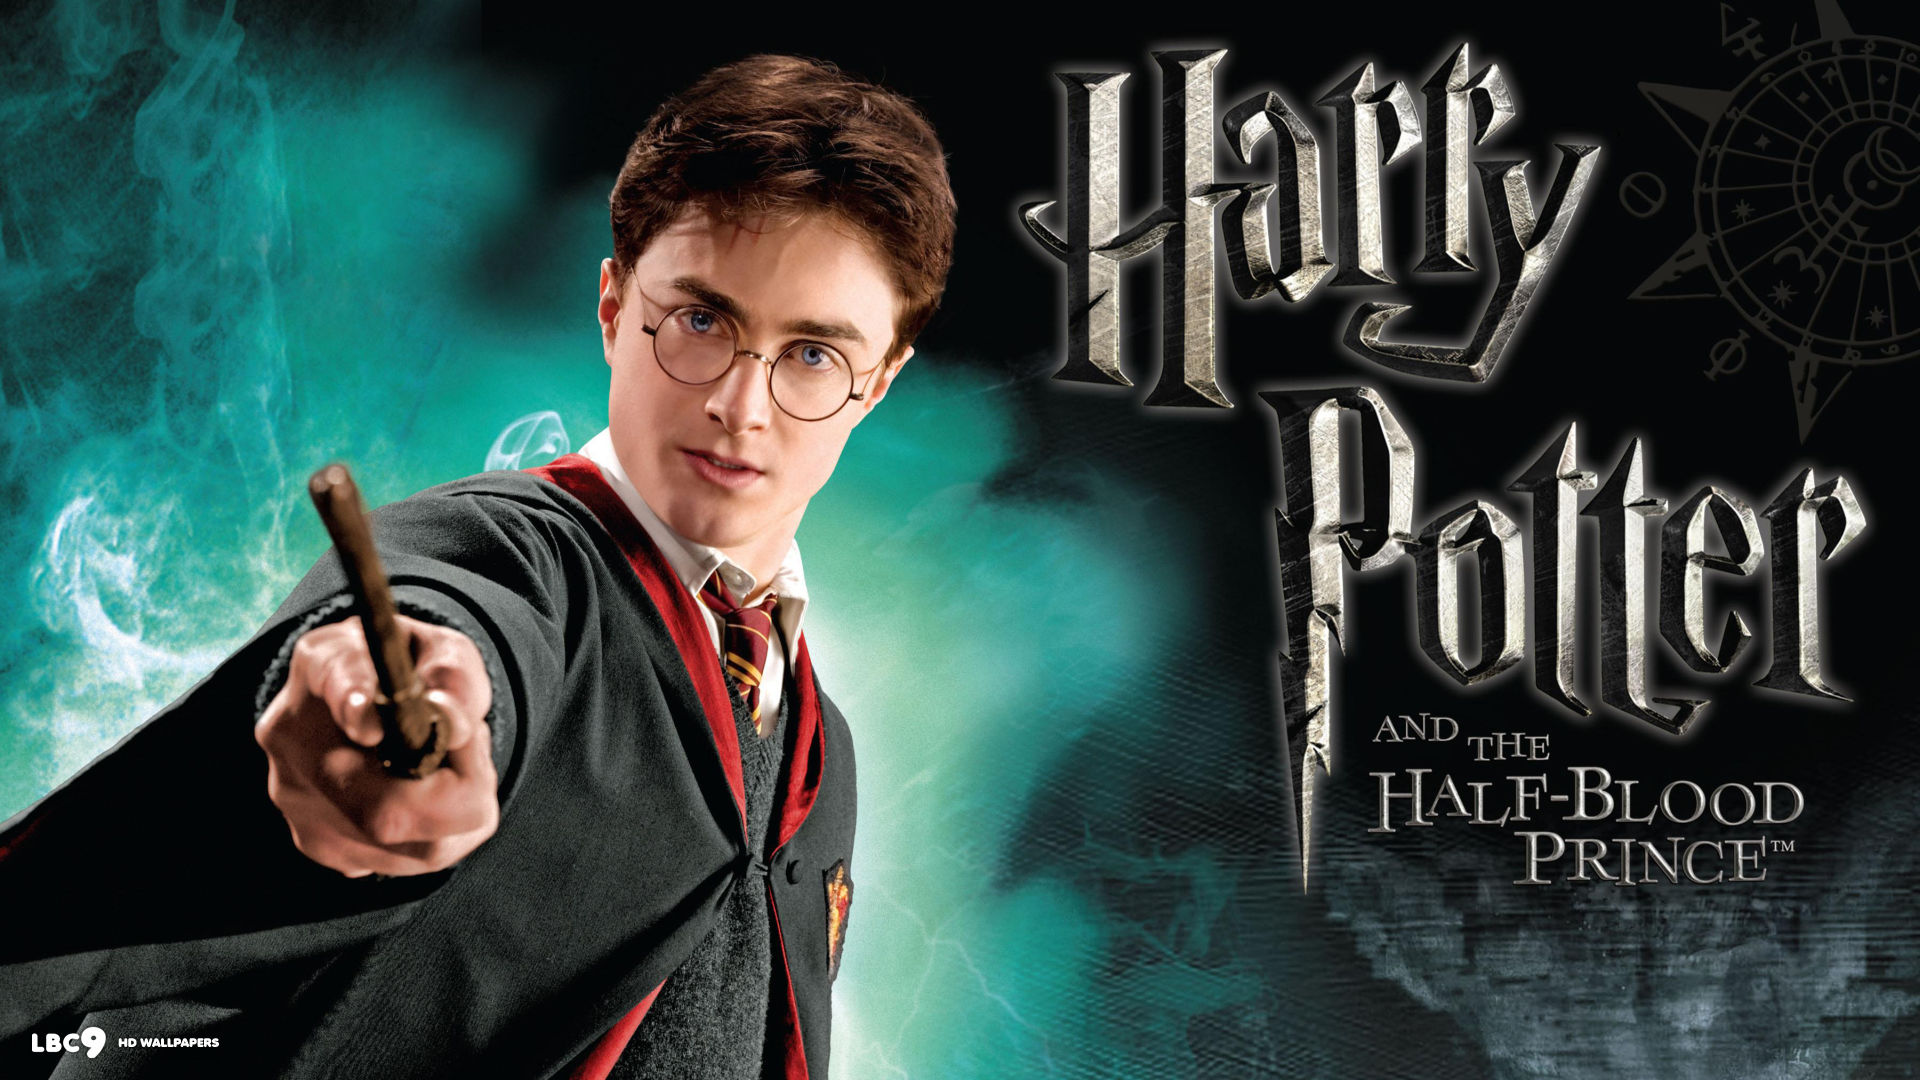 Harry potter free hd wallappers free download hd wallpaper harry potter free hd wallappers free download voltagebd Image collections